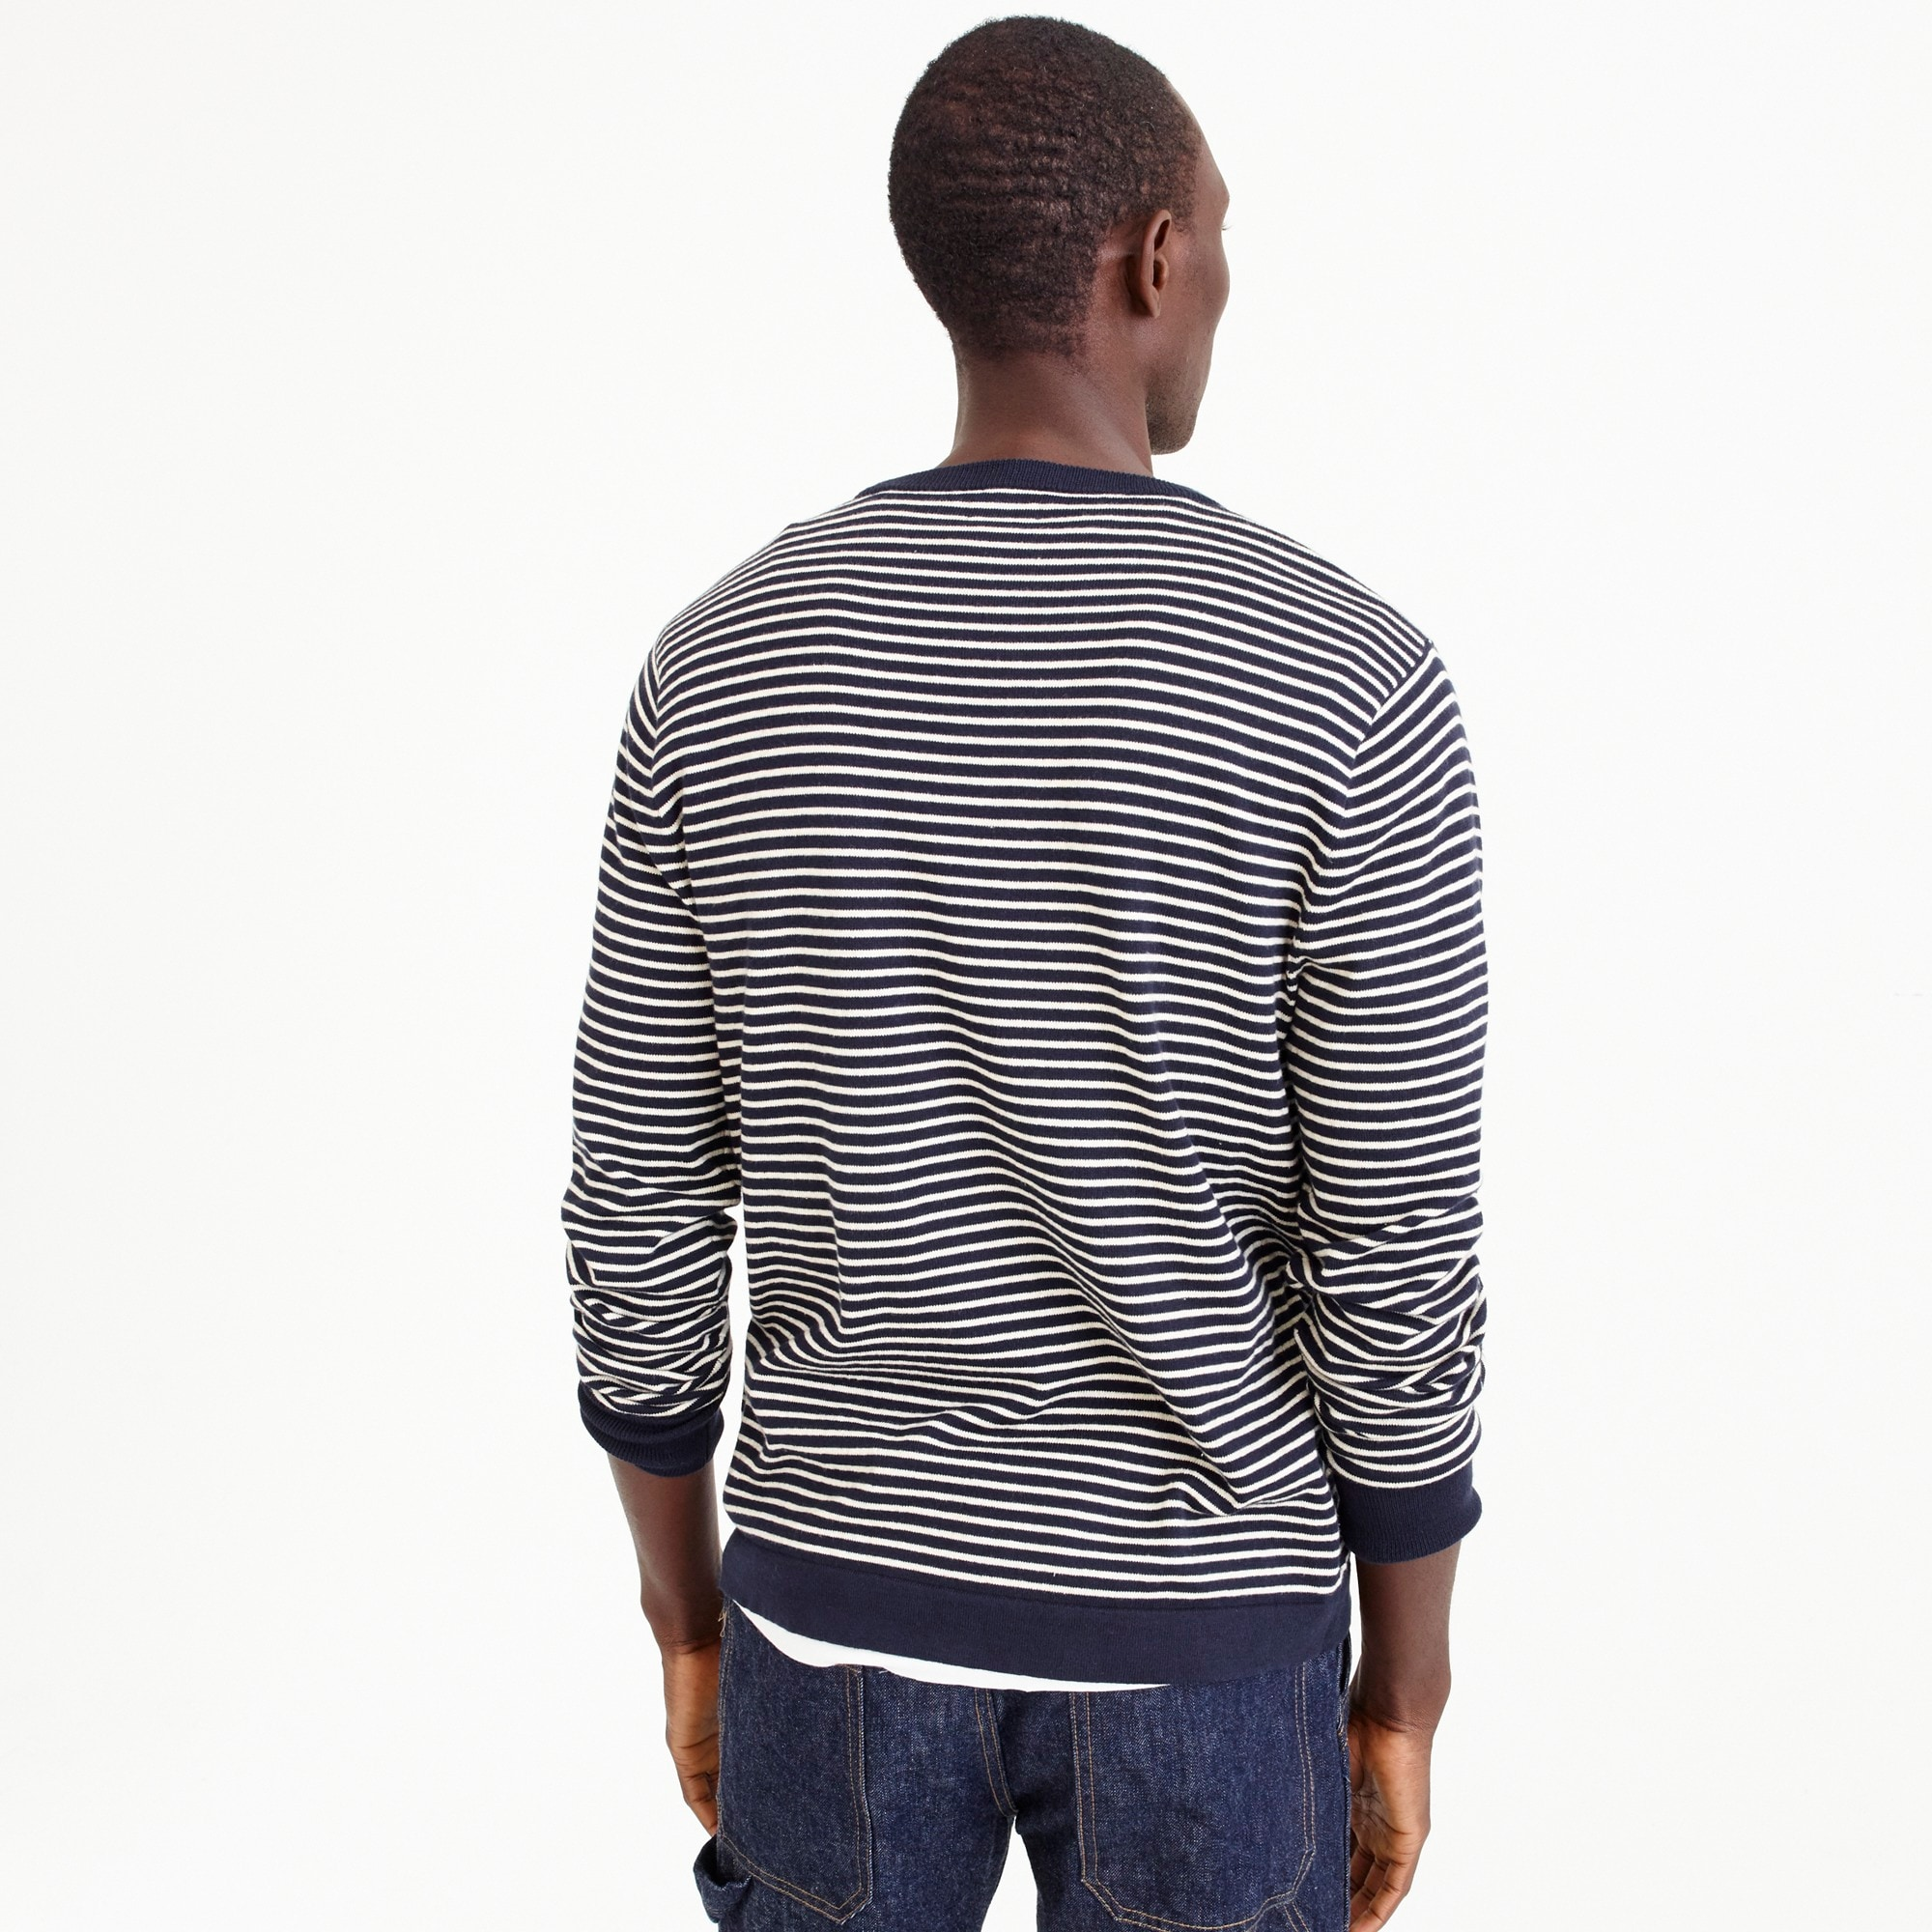 Image 3 for Cotton crewneck in dark indigo stripe